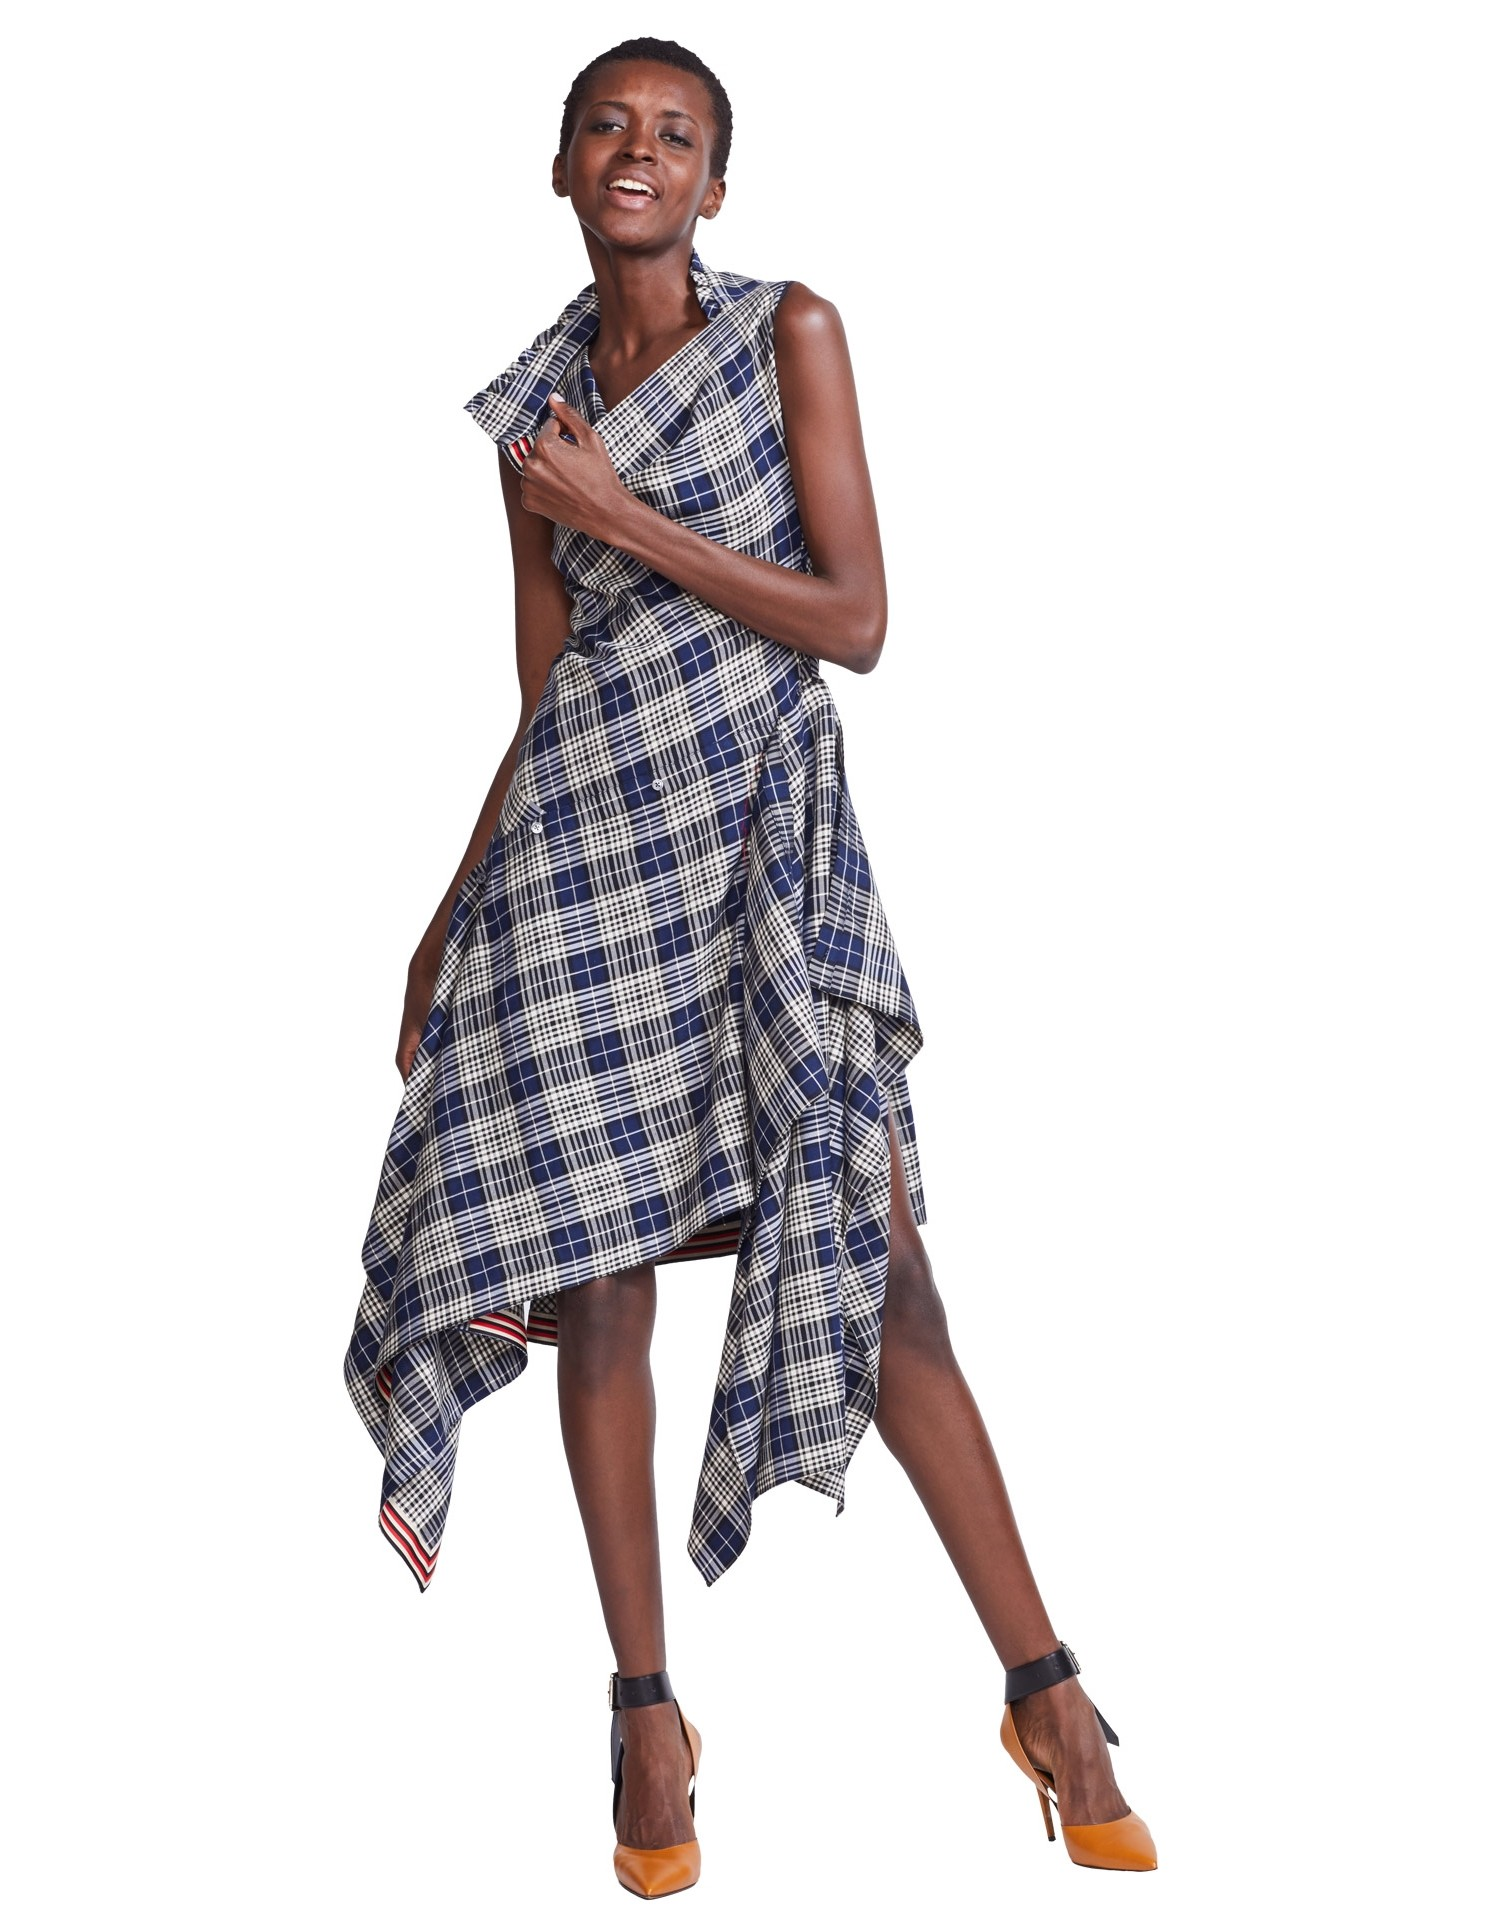 MONSE Plaid Cowl Neck Shirt Dress on Model Front View